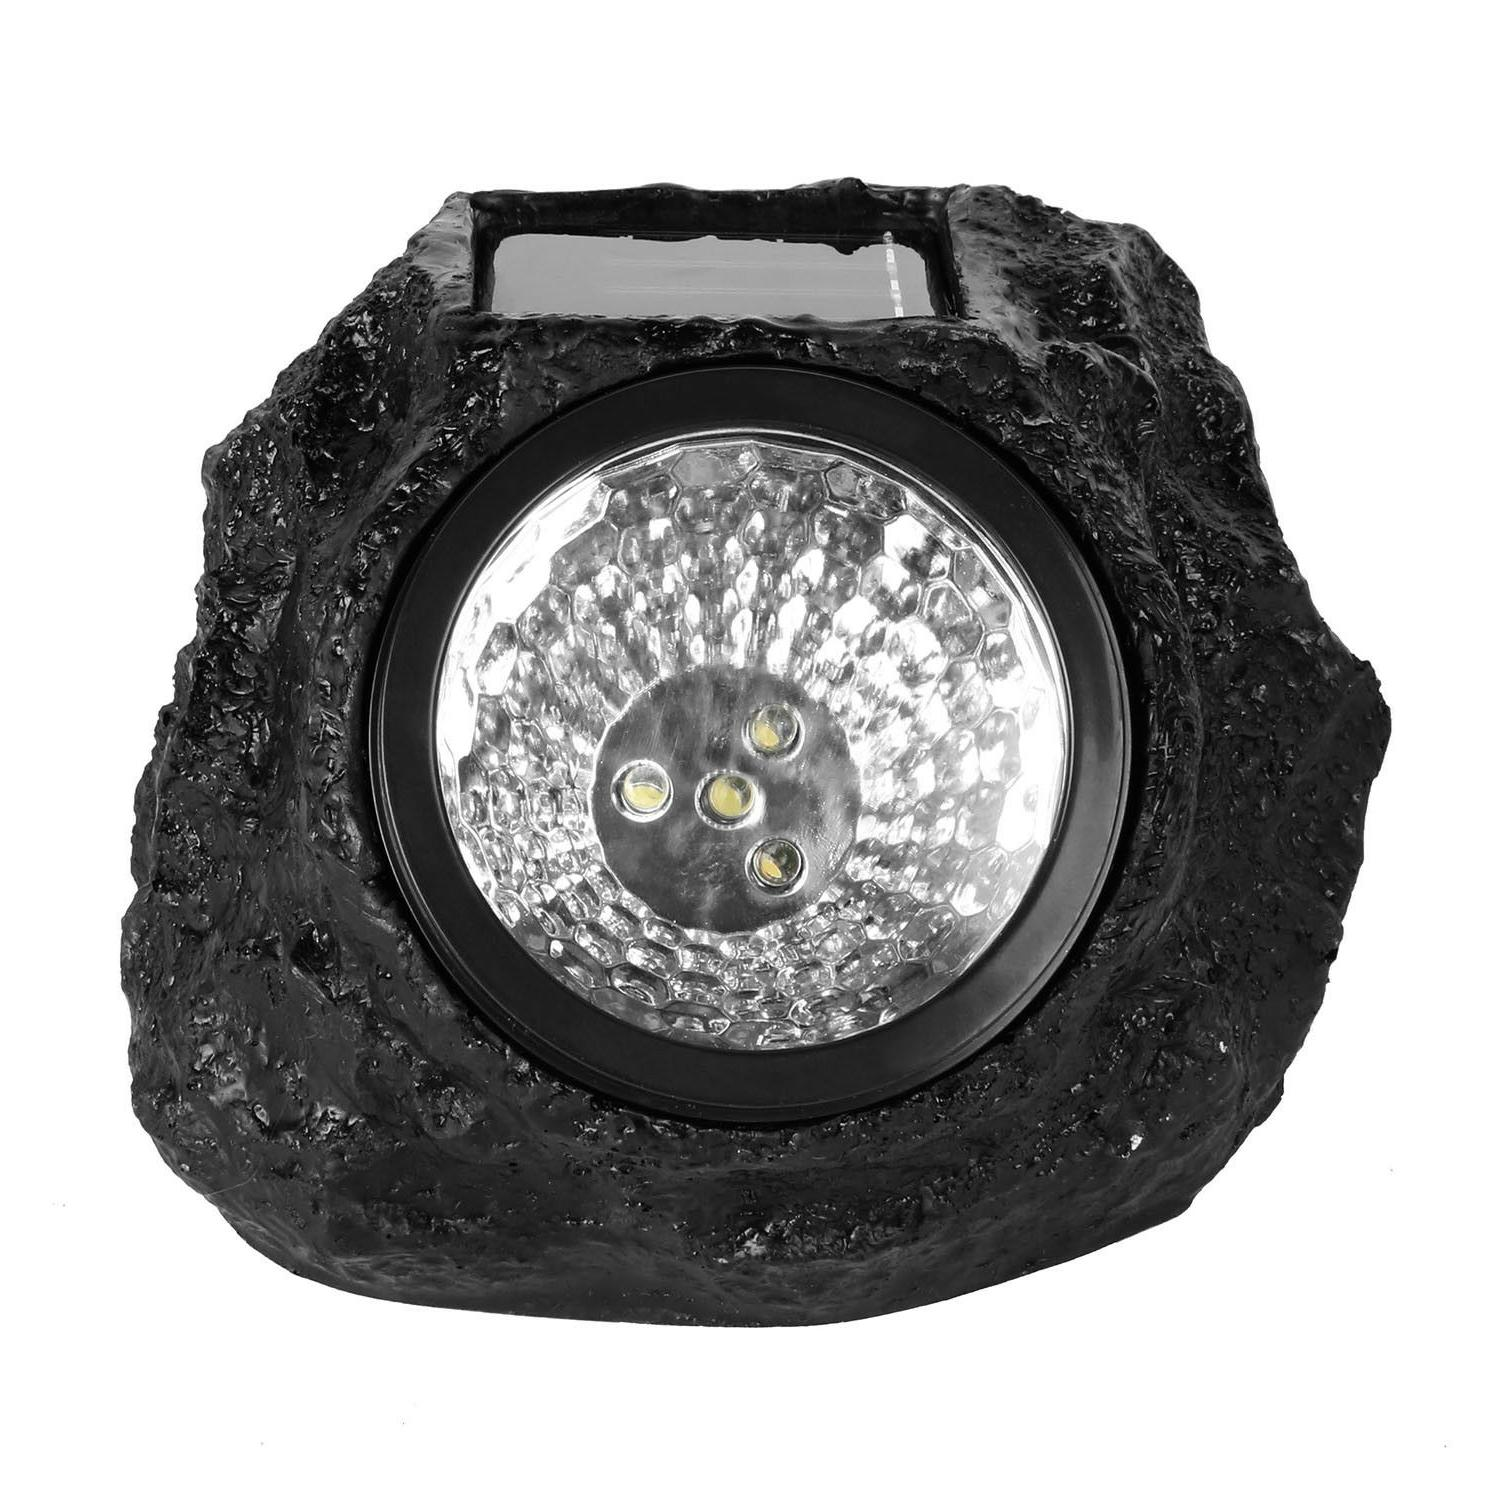 4 Solar Power Spot Light Garden Outdoor Lighting